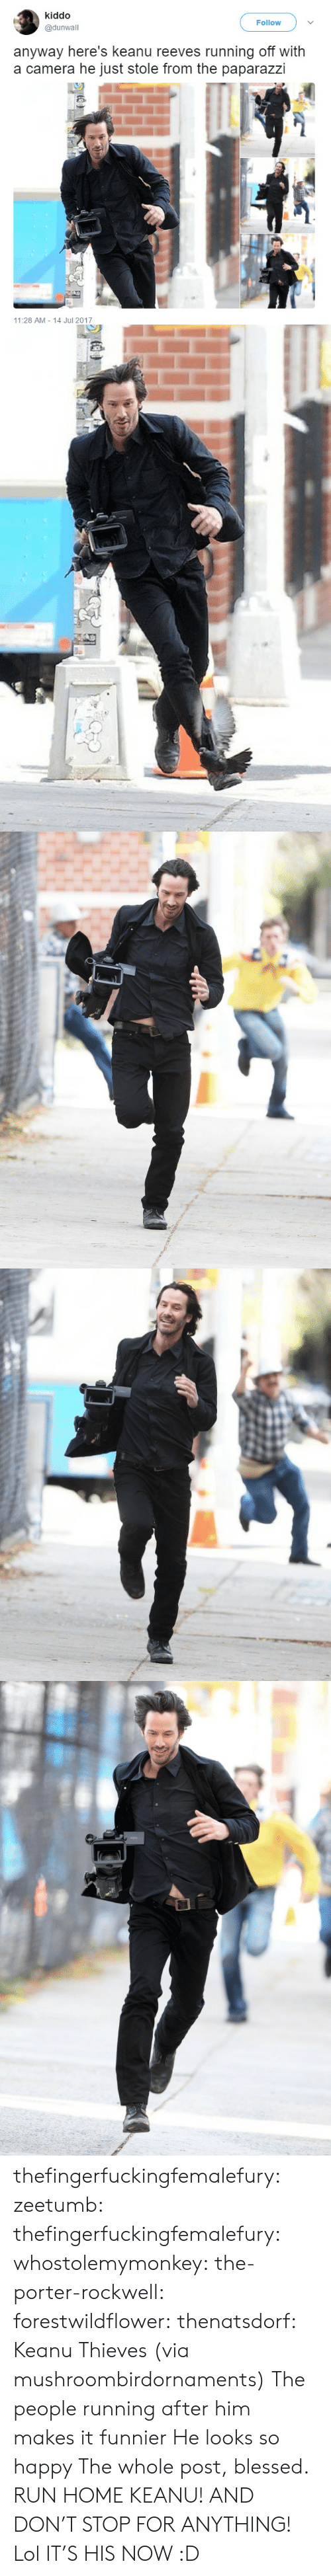 rockwell: kiddo  @dunwall  Follow  anyway here's keanu reeves running off with  a camera he just stole from the paparazzi  11:28 AM 14 Jul 2017 thefingerfuckingfemalefury:  zeetumb: thefingerfuckingfemalefury:   whostolemymonkey:  the-porter-rockwell:   forestwildflower:   thenatsdorf: Keanu Thieves (via mushroombirdornaments)  The people running after him makes it funnier   He looks so happy   The whole post, blessed.  RUN HOME KEANU! AND DON'T STOP FOR ANYTHING!   Lol  IT'S HIS NOW :D